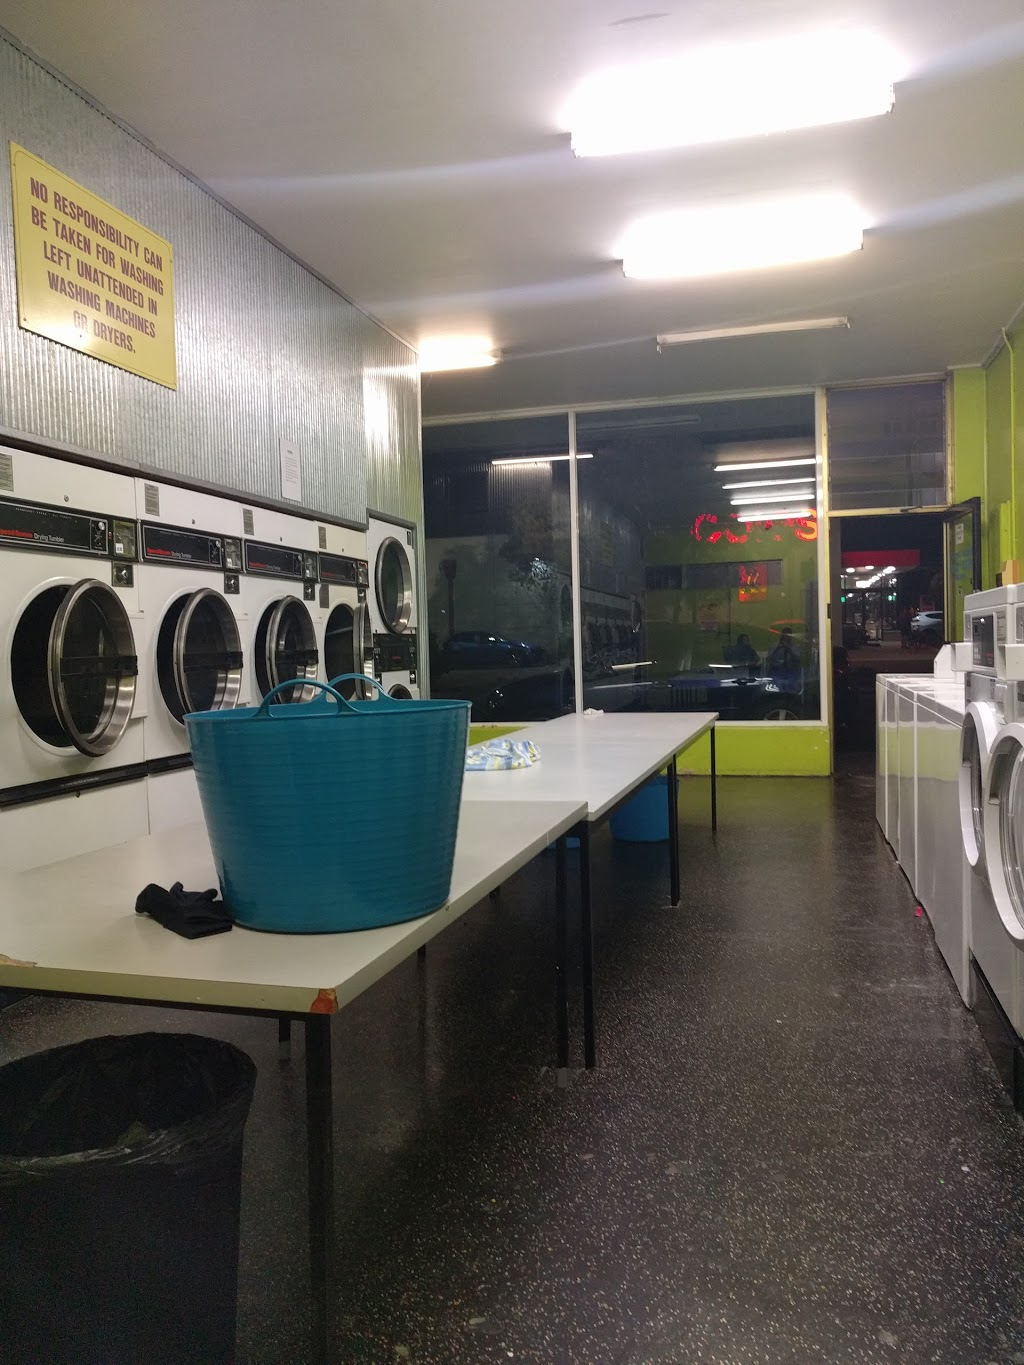 Coin Operated Laundry | laundry | 126 Clarence St, Geelong West VIC 3218, Australia | 0438542900 OR +61 438 542 900